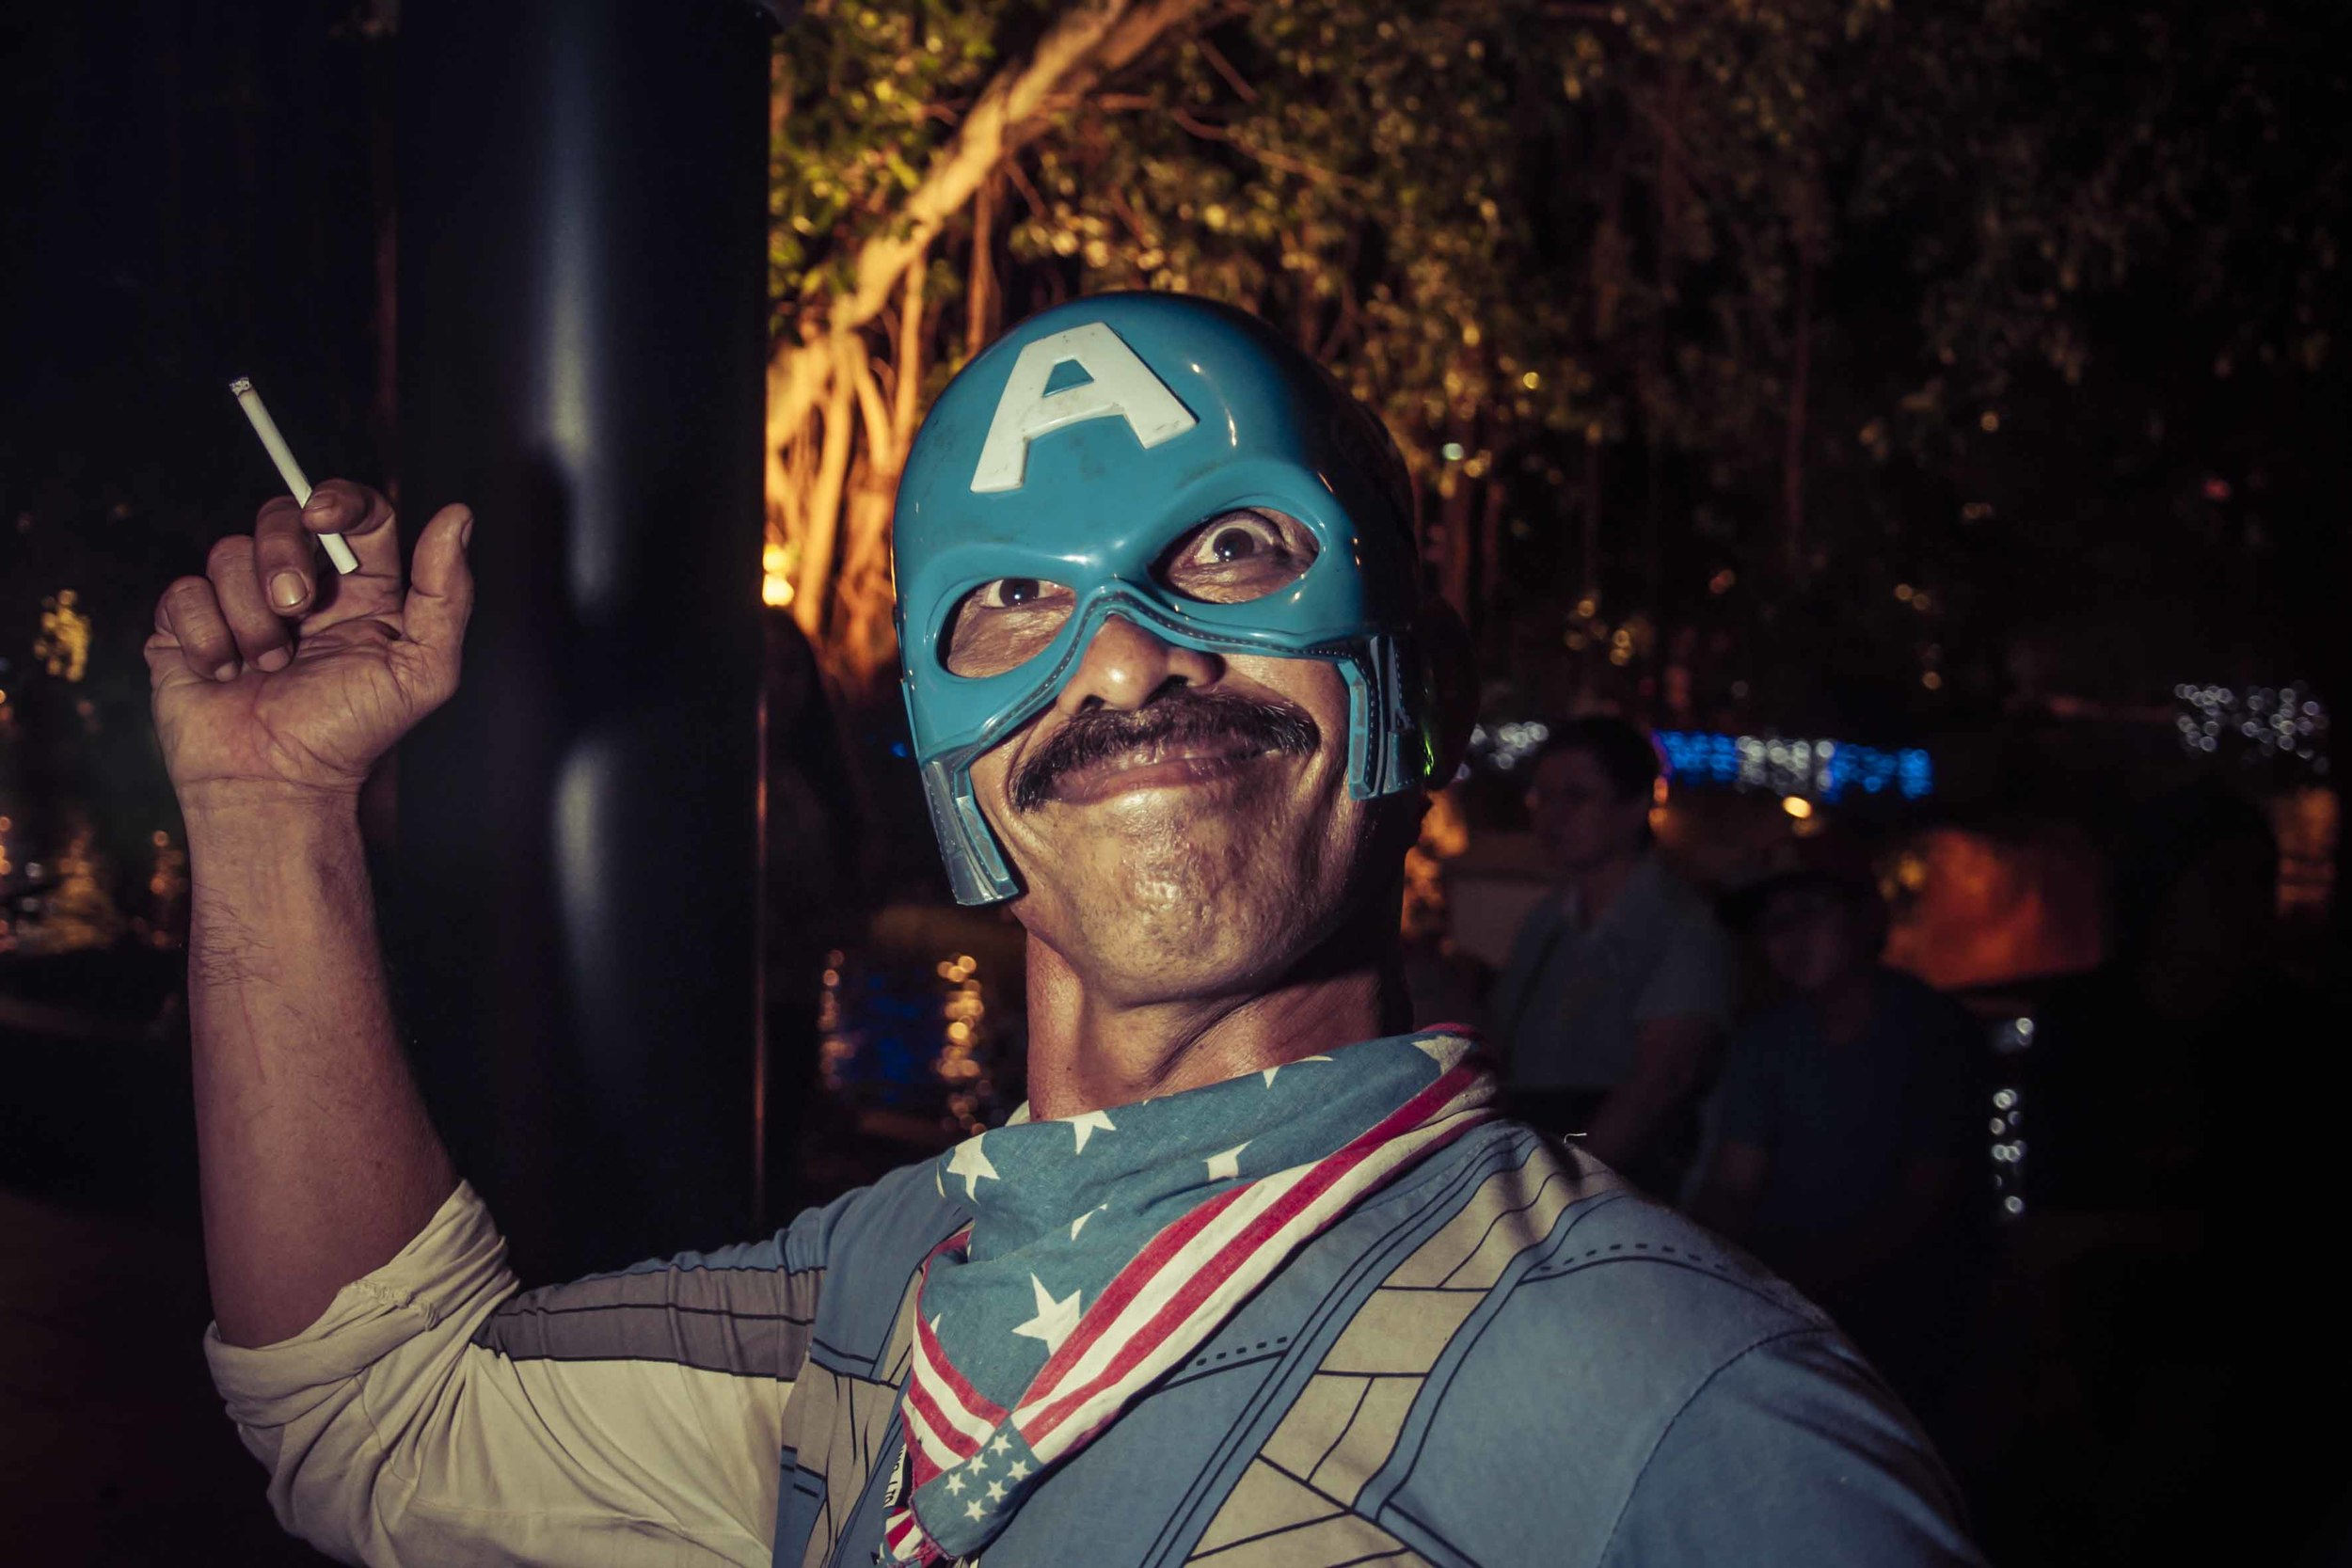 Captain America, a one man show stationed outside the Hard Rock Cafe, Malacca,  poses during his cigarette break.